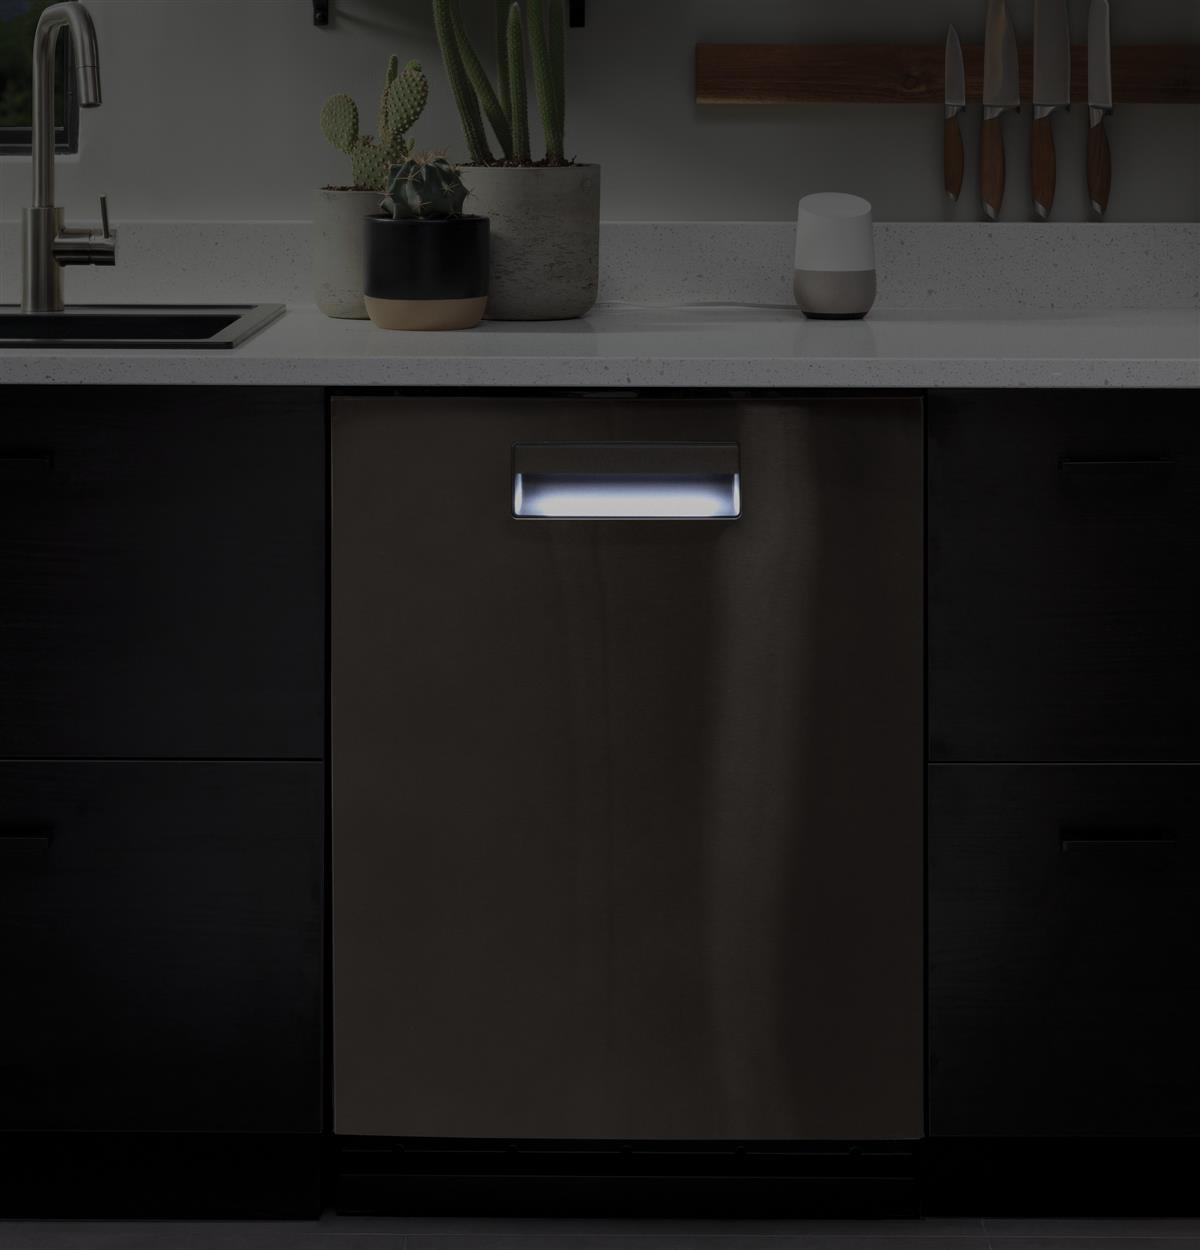 Here's a little kitchen convenience we know you're gonna love: a built-in nightlight in the dishwasher door that creates the perfect setting for late- night snacking